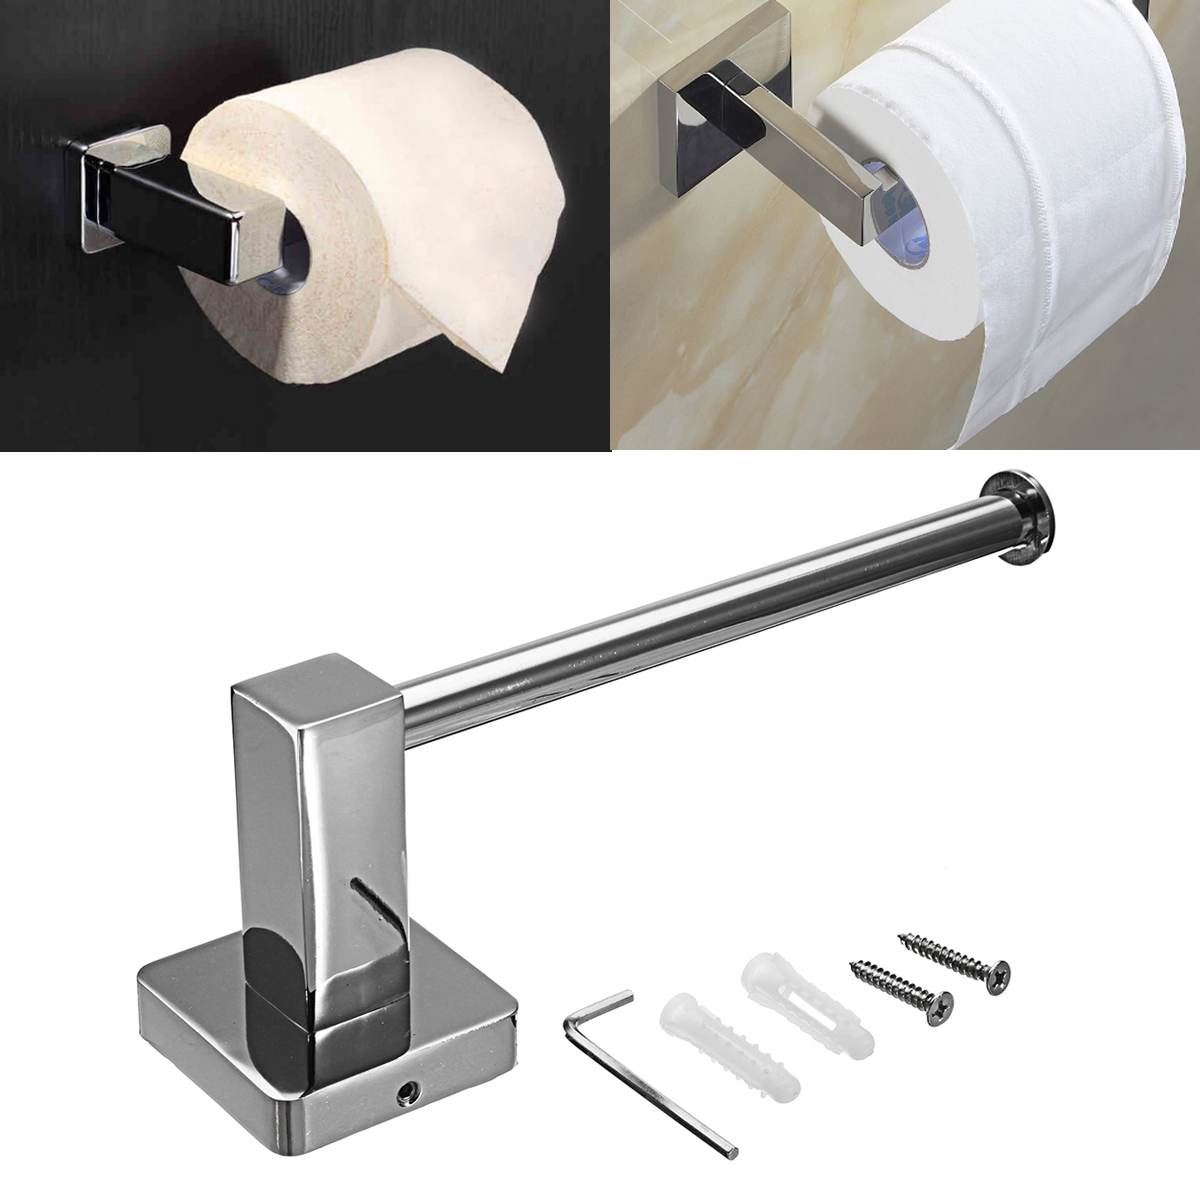 Wall Mount Toilet Paper Holder Stainless Steel Bathroom Kitchen Roll Paper Tissue Towel Rack Holders Bathroom Self Adhesive